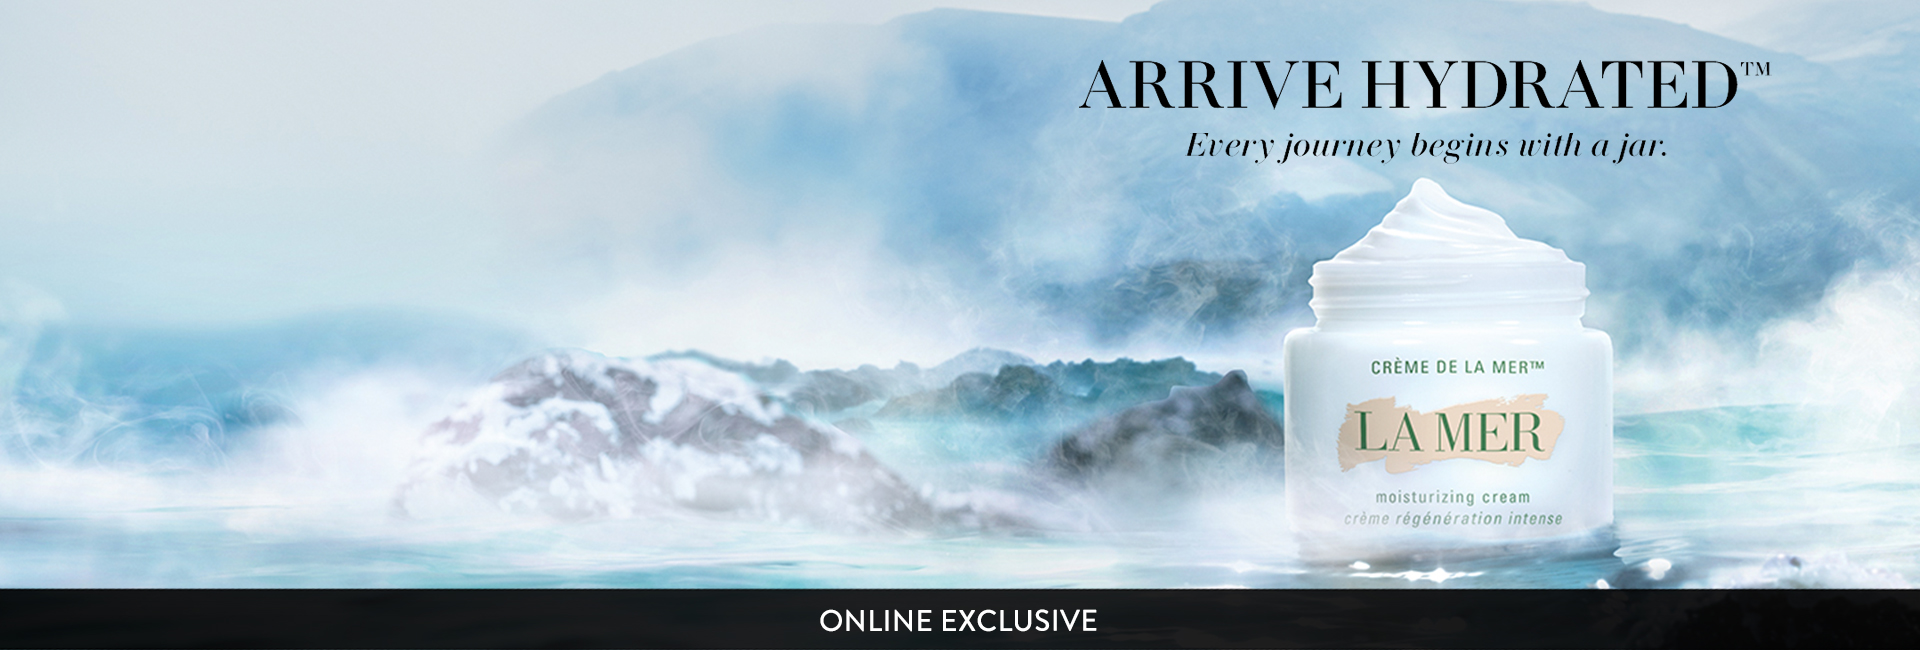 La Mer arrive hydrated banner